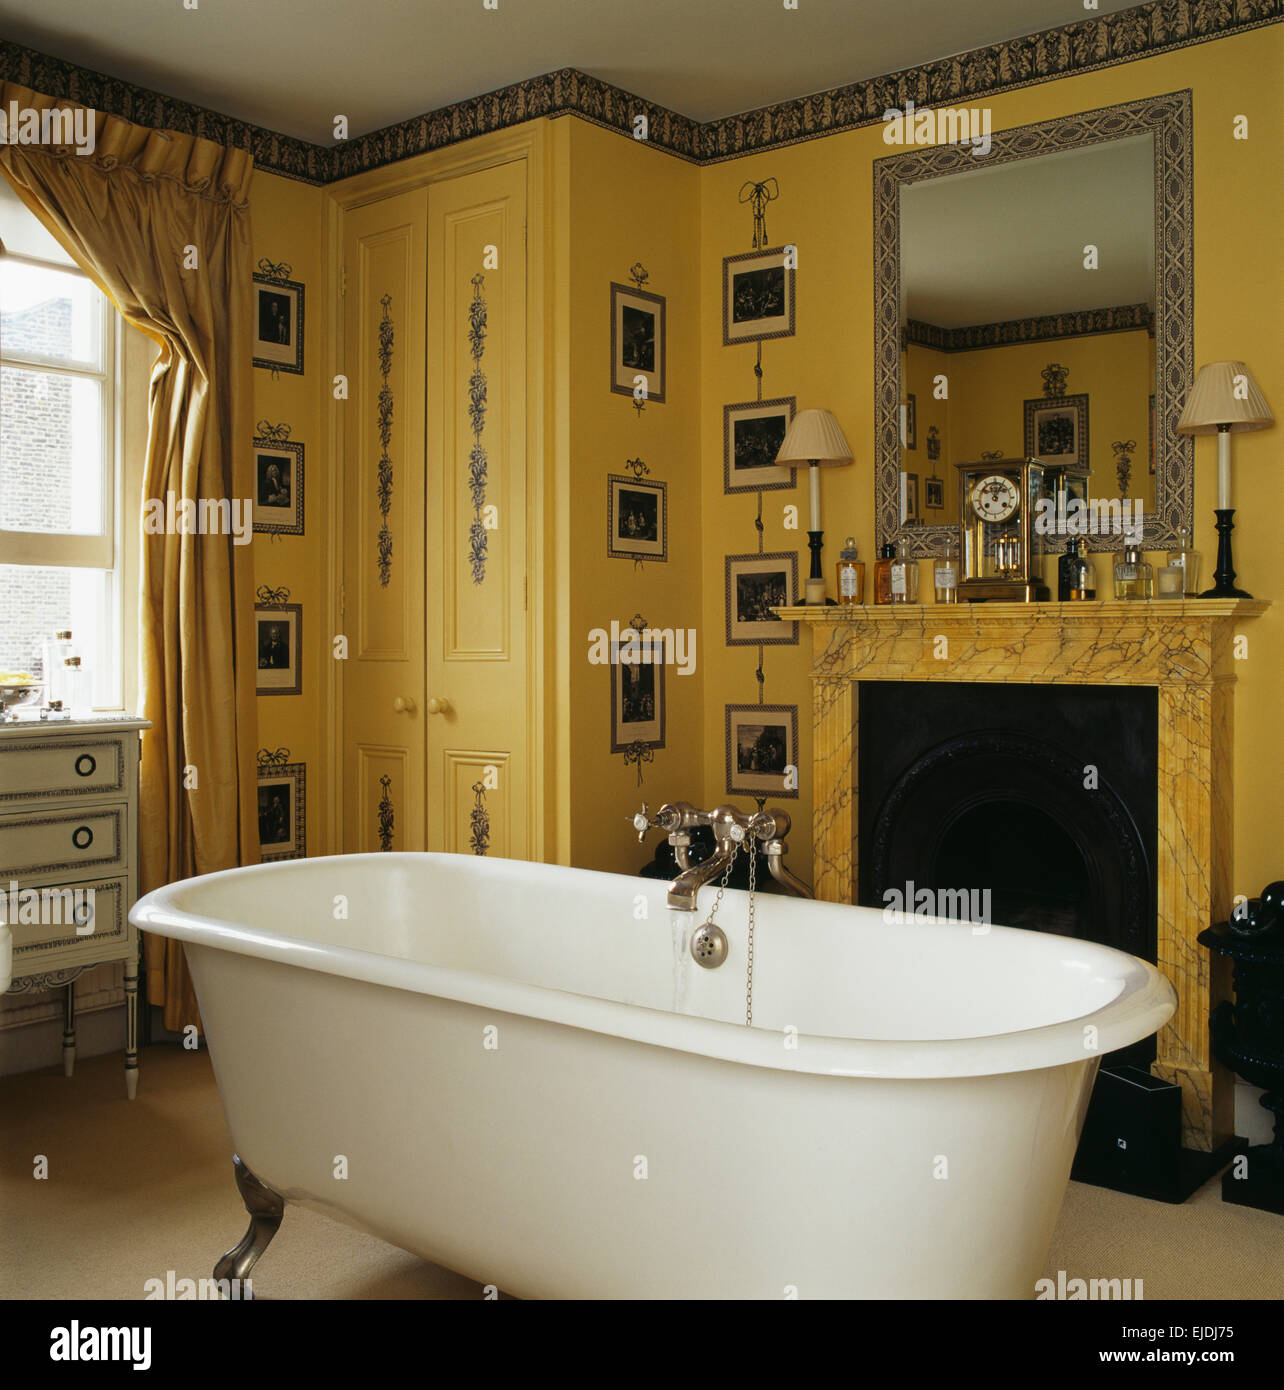 Print room wallpaper in yellow bathroom with roll top bath in front ...